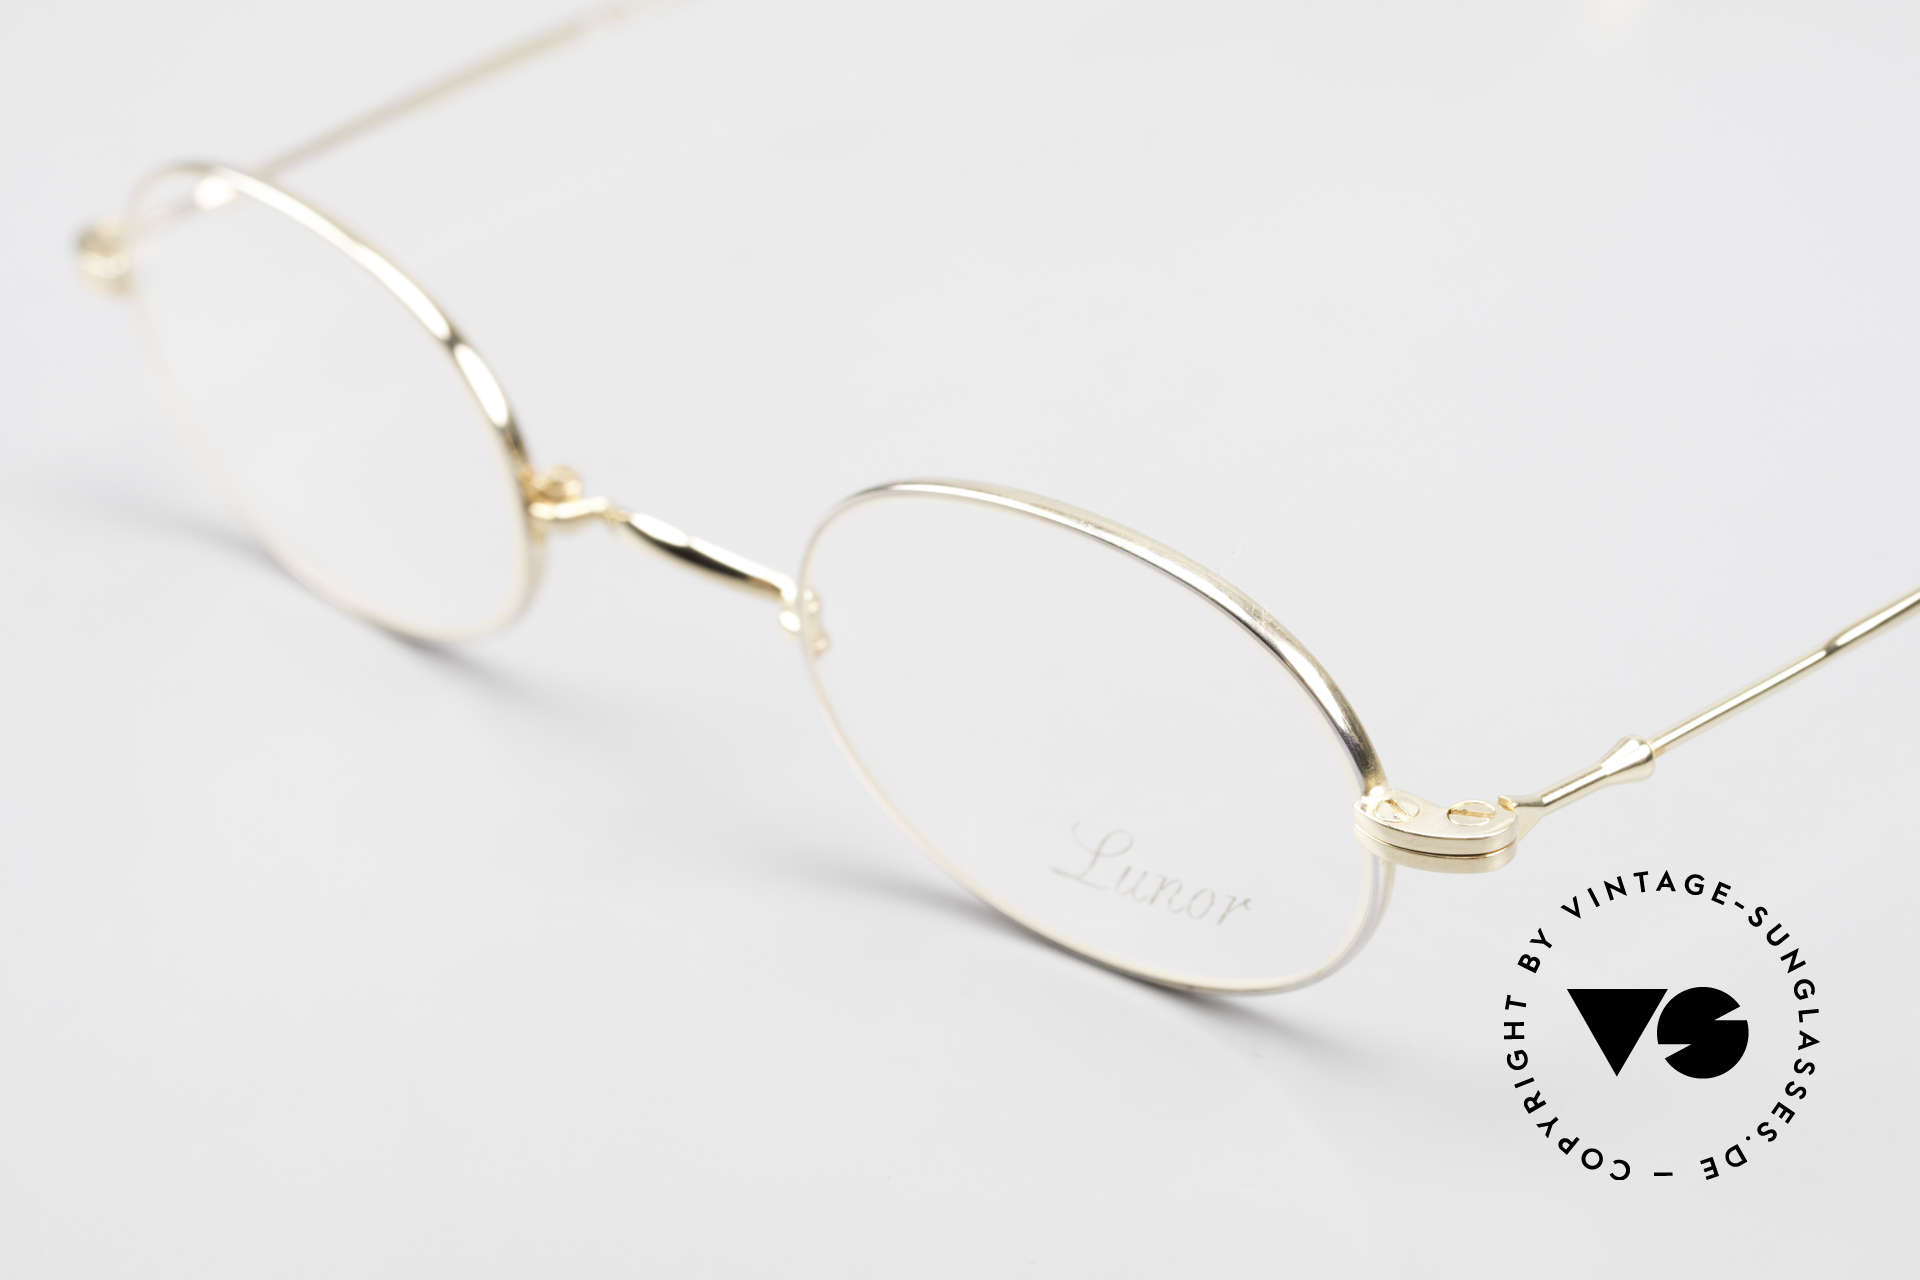 Lunor XXV Folding 04 Oval Foldable Frame Gold Plated, it's the oval folding model of the XXV-series, gold-plated, Made for Men and Women